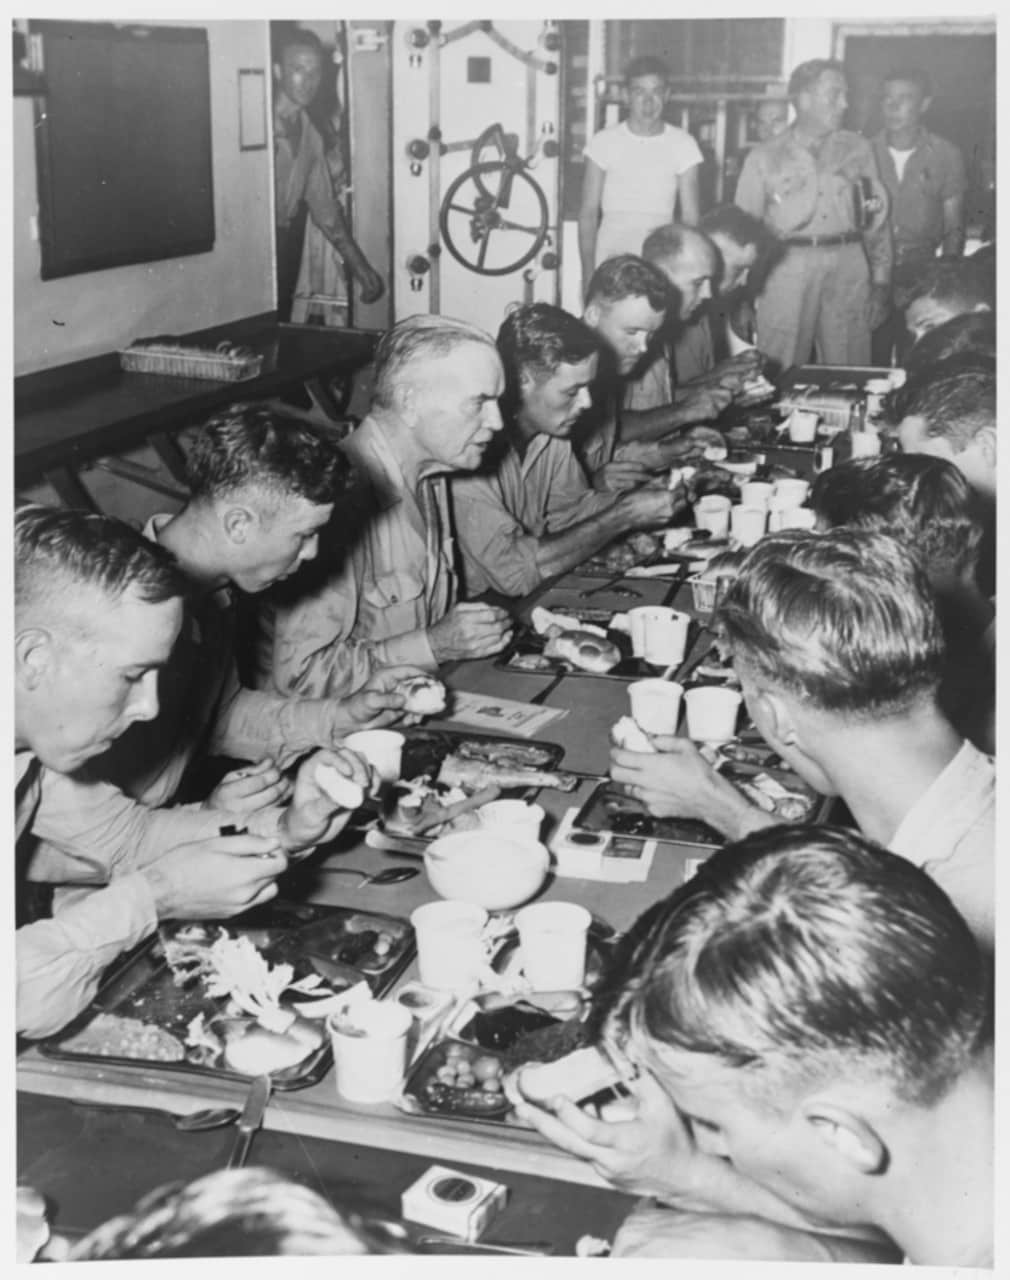 Admiral William F. Halsey, Commander, Third Fleet (left center) eats Thanksgiving dinner with the crew of his flagship, USS New Jersey (BB-62), 30 November 1944. (Photo: National Archives)